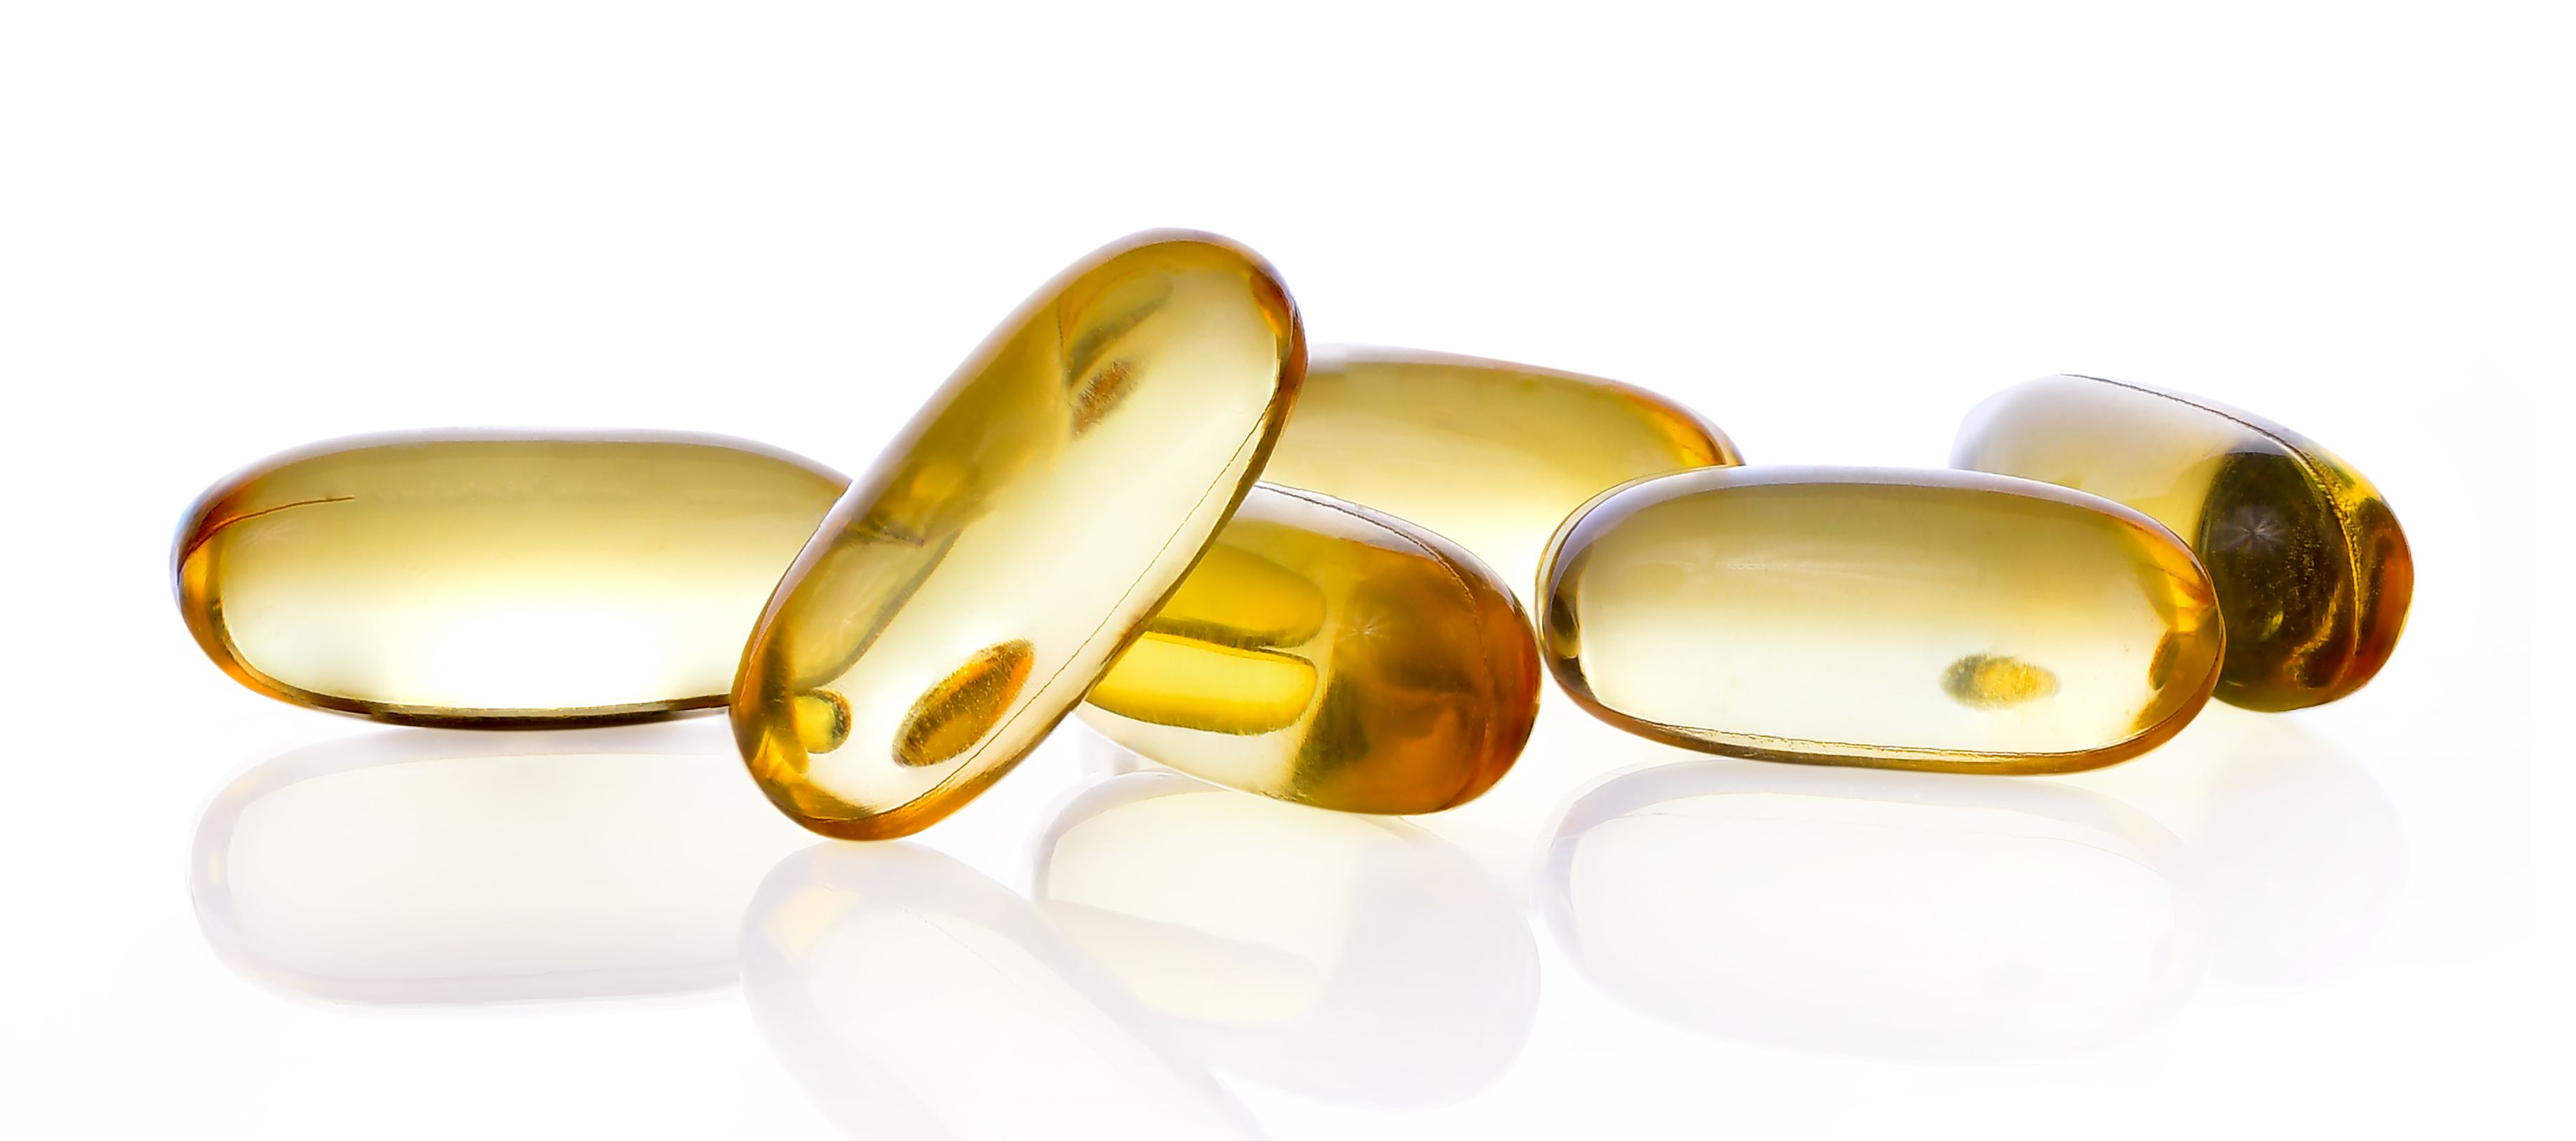 Protect Your Brain With Vitamin E Supplements